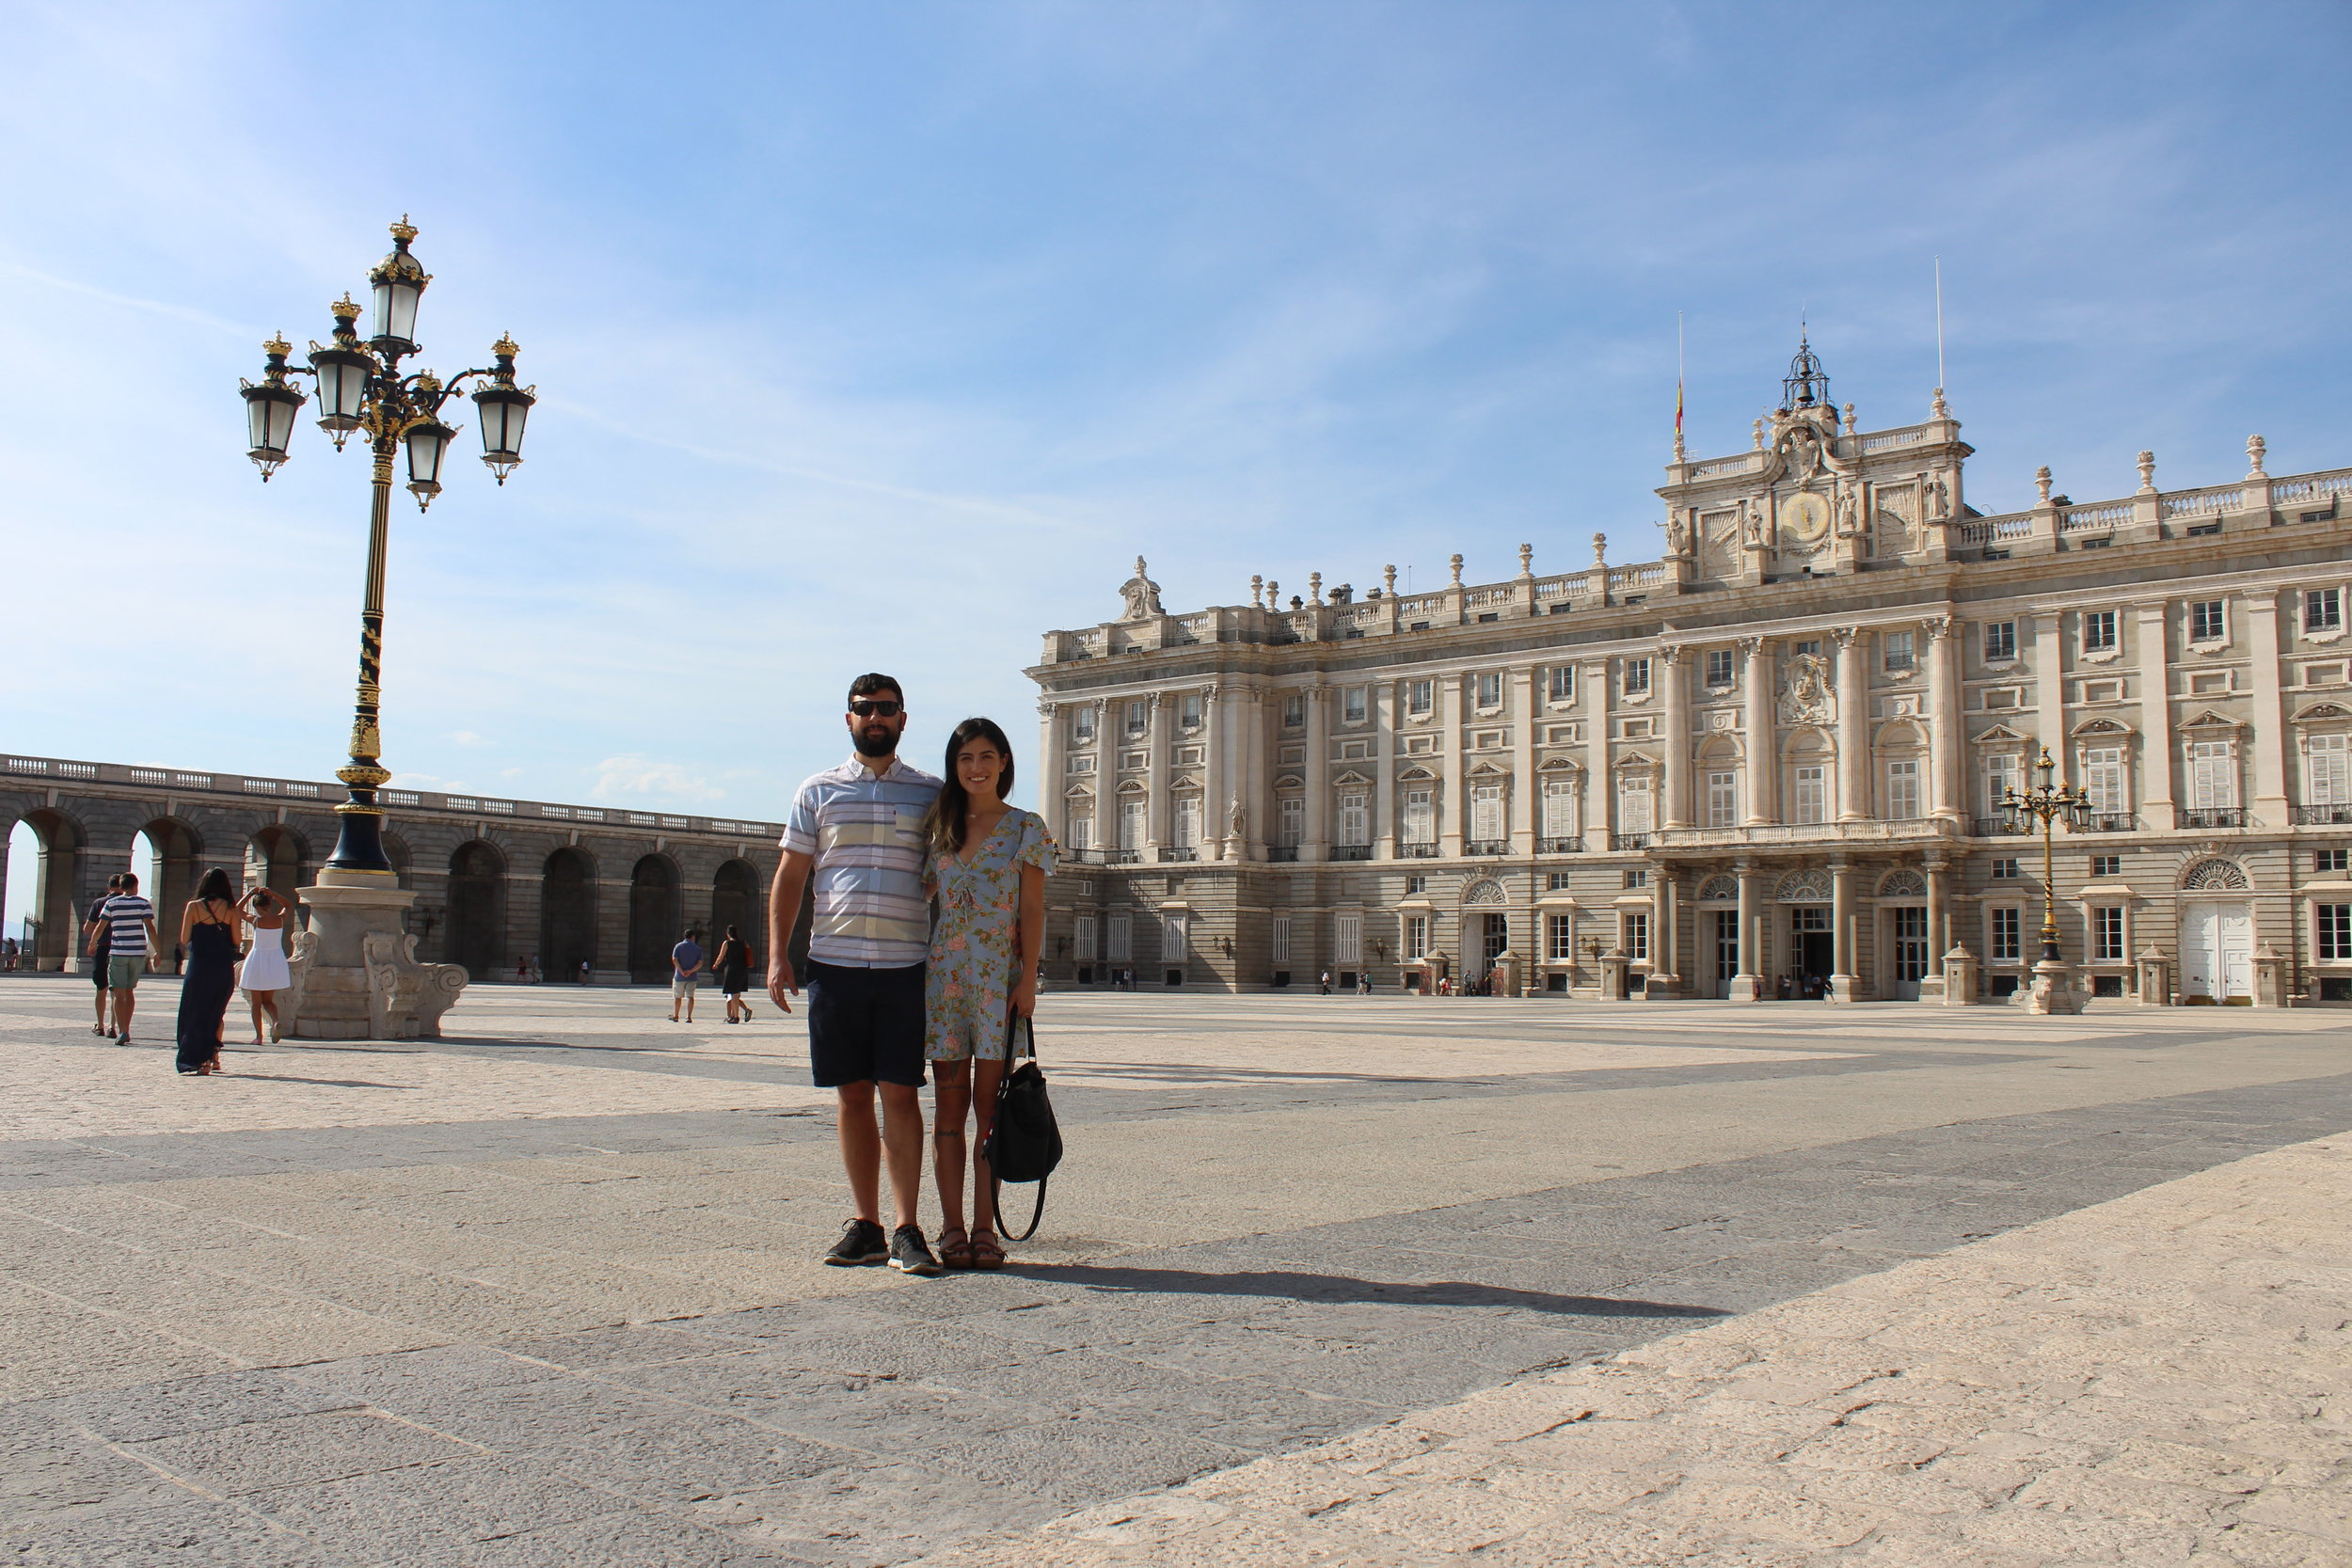 In front of The Royal Palace of Madrid